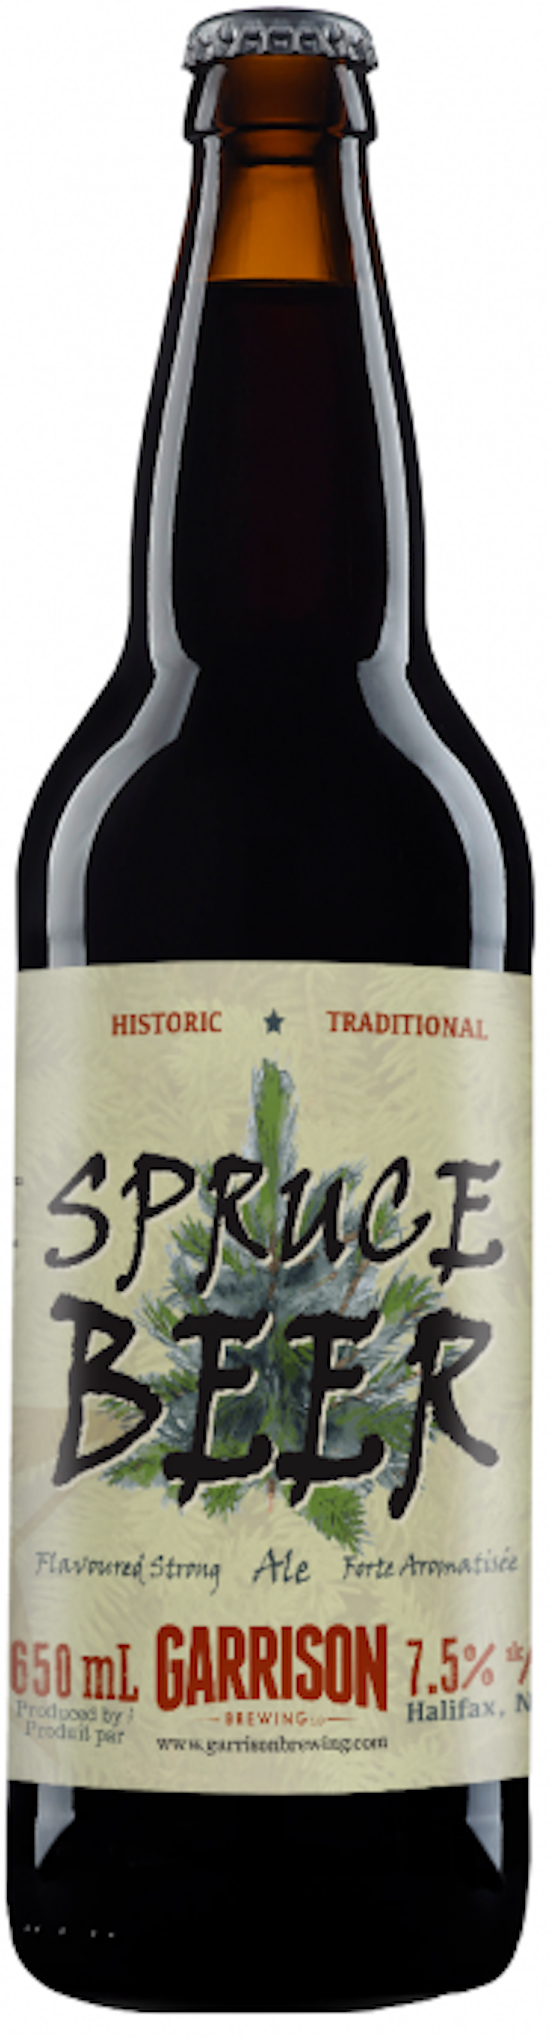 garrison-brewing-company-spruce-beer_1532979935